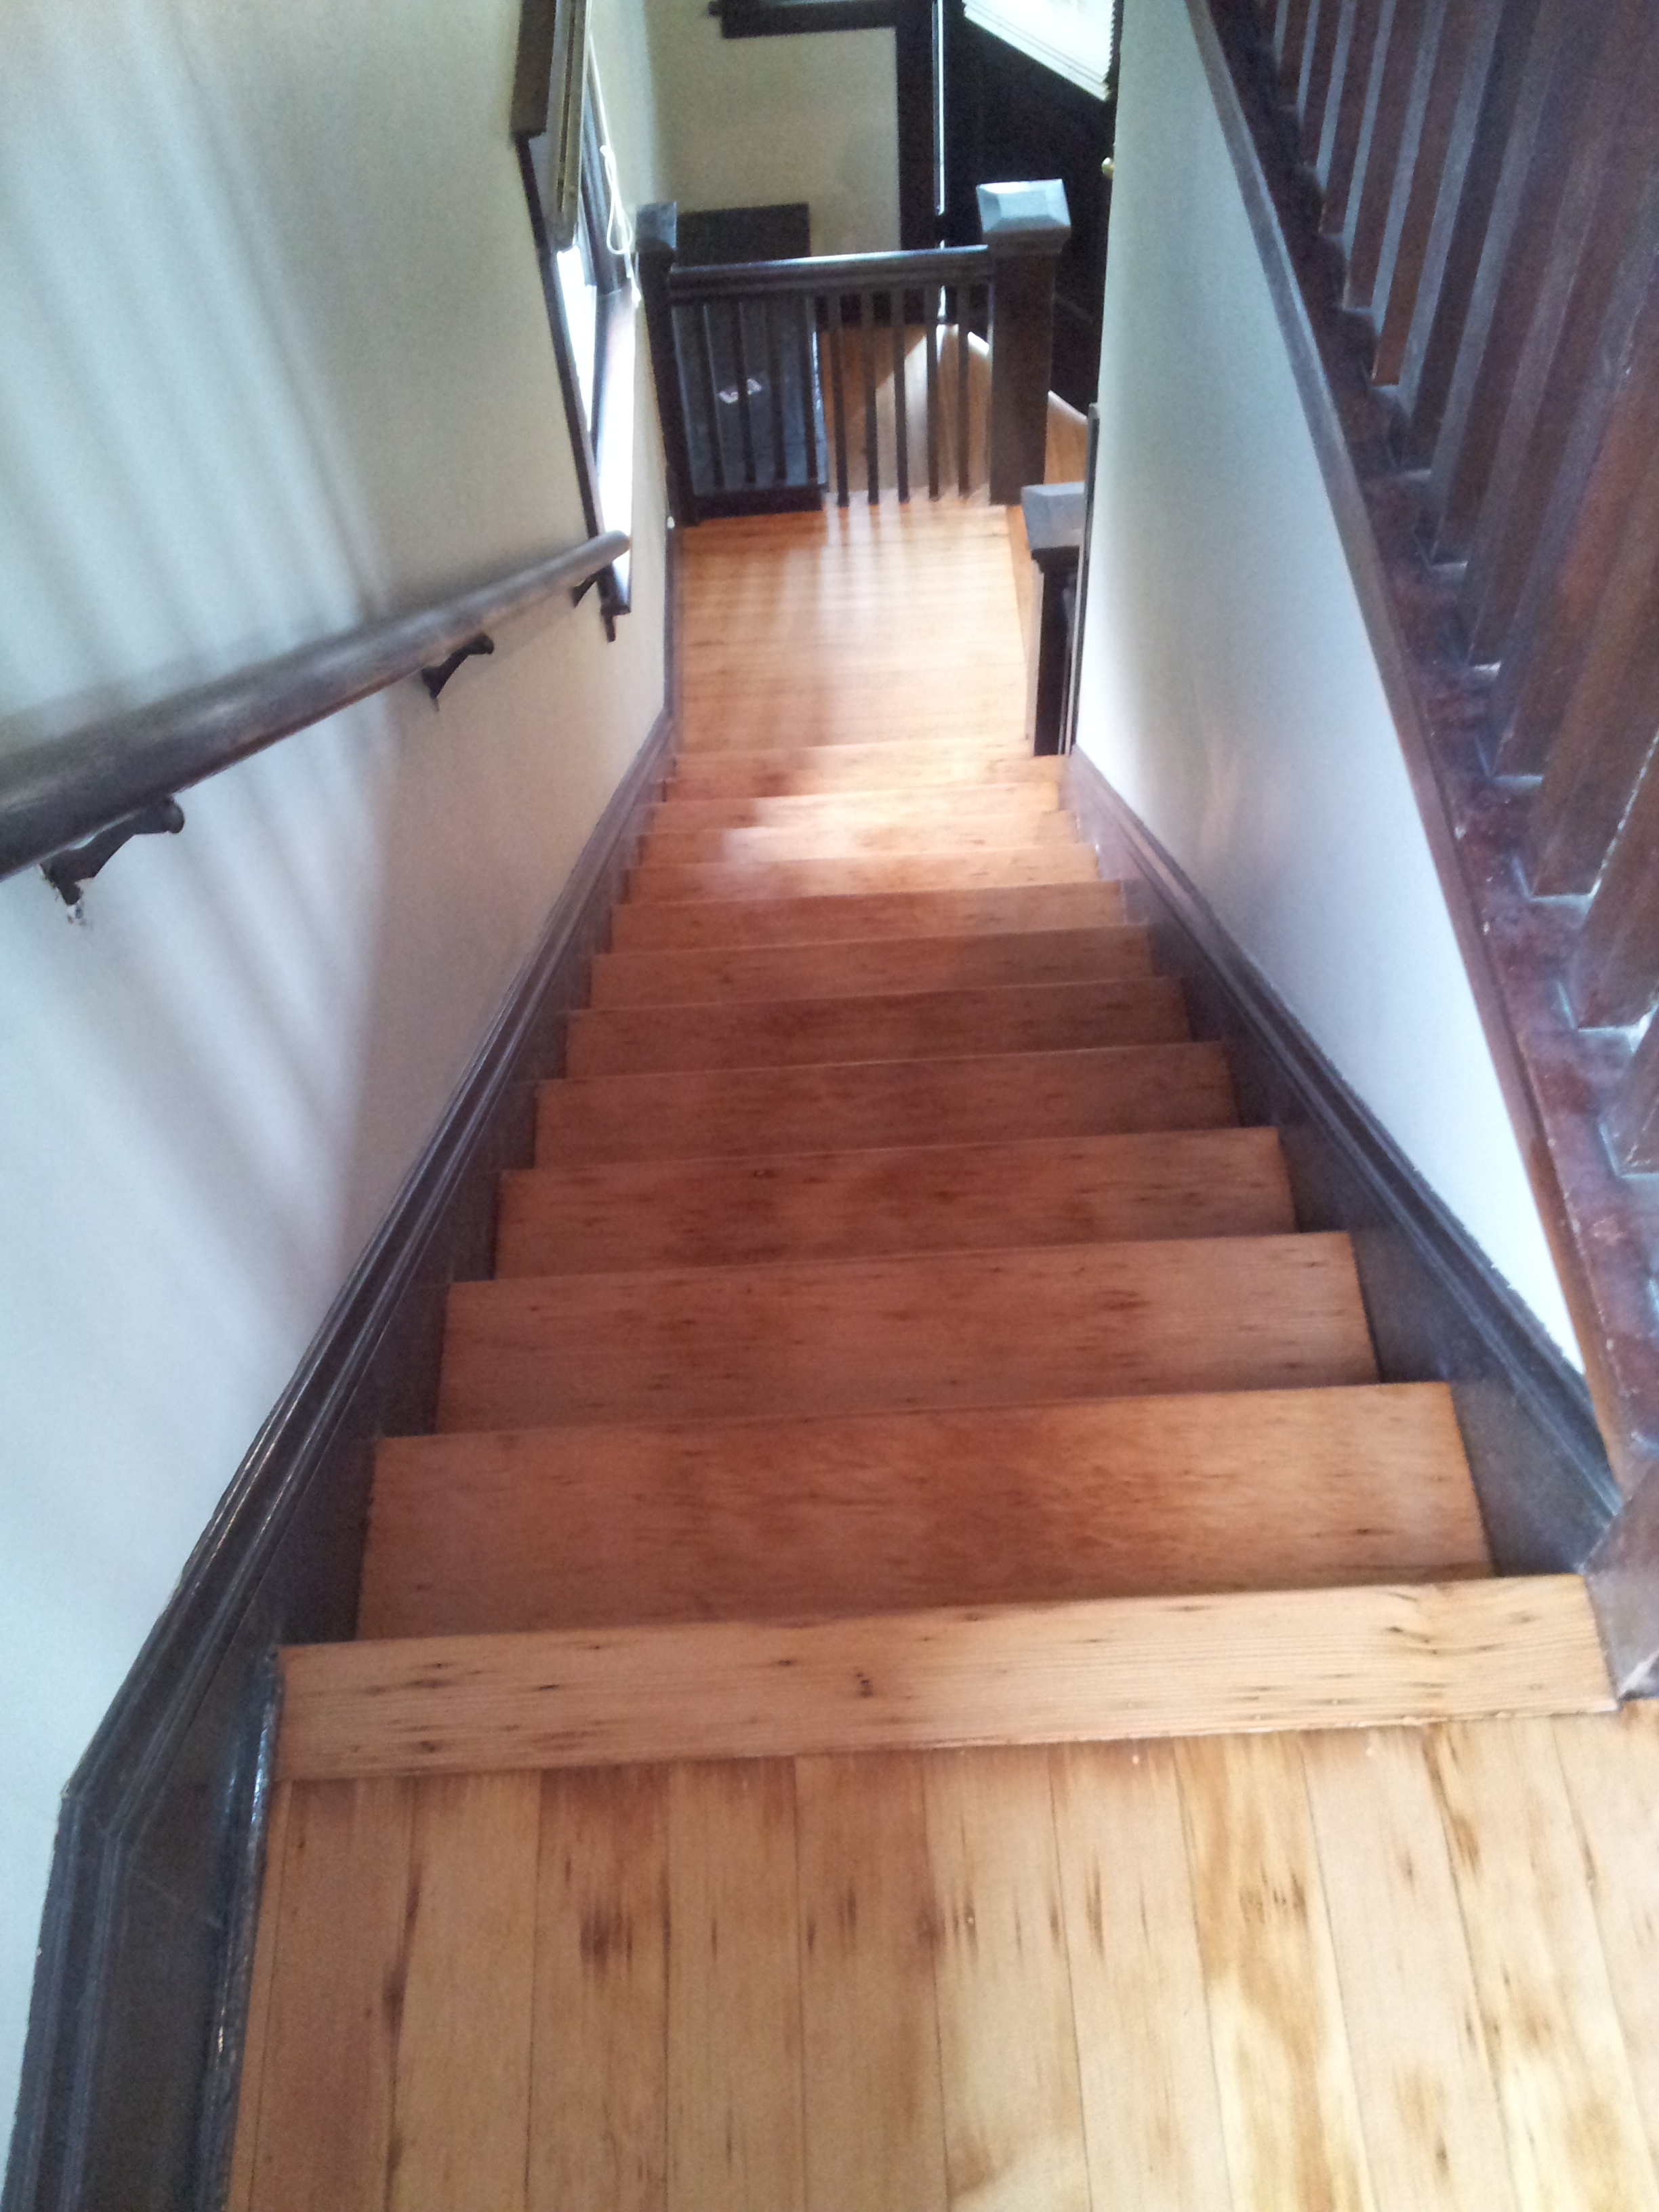 The New Owners Of This Kirkland Condo Wanted The Carpet Gone And Had Us  Install, Stain And Finish New Oak Treads And Risers On Their Stairway.